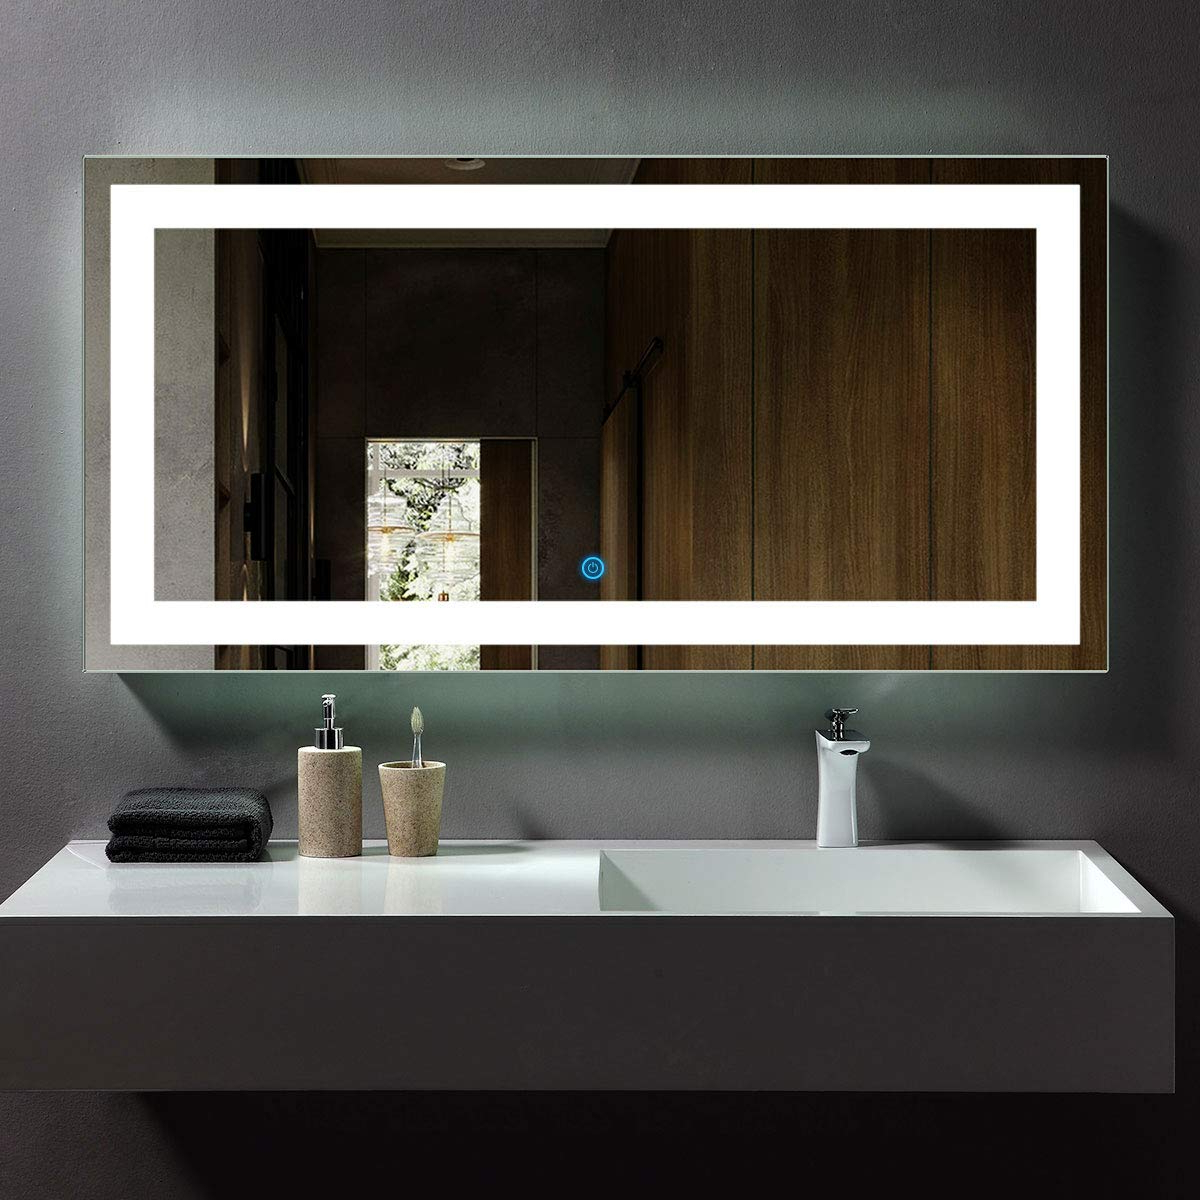 Modern Wall Mirrors In Popular Dp Home Led Lighted Rectangle Bathroom Mirror, Modern Wall Mirror With Lights, Wall Mounted Makeup Vanity Mirror Over Cosmetic Bathroom Sink 48 X (View 9 of 20)